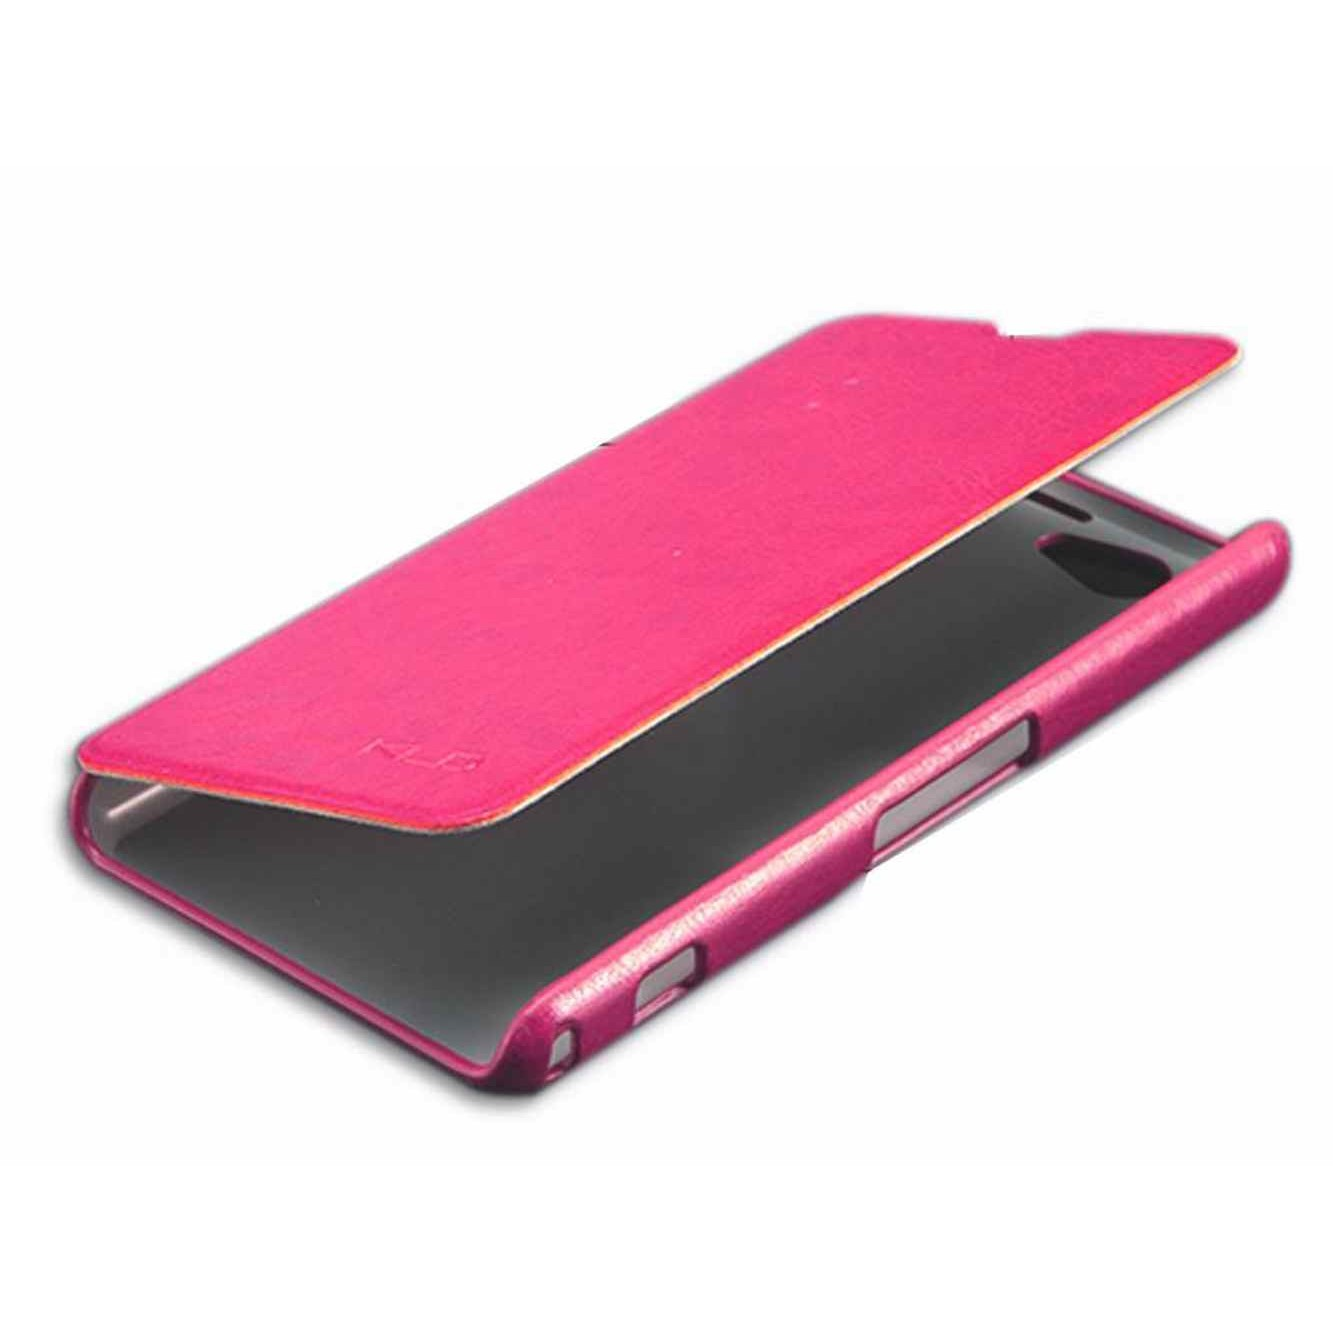 Flip Cover For Sony Xperia Z1 Compact Pink By